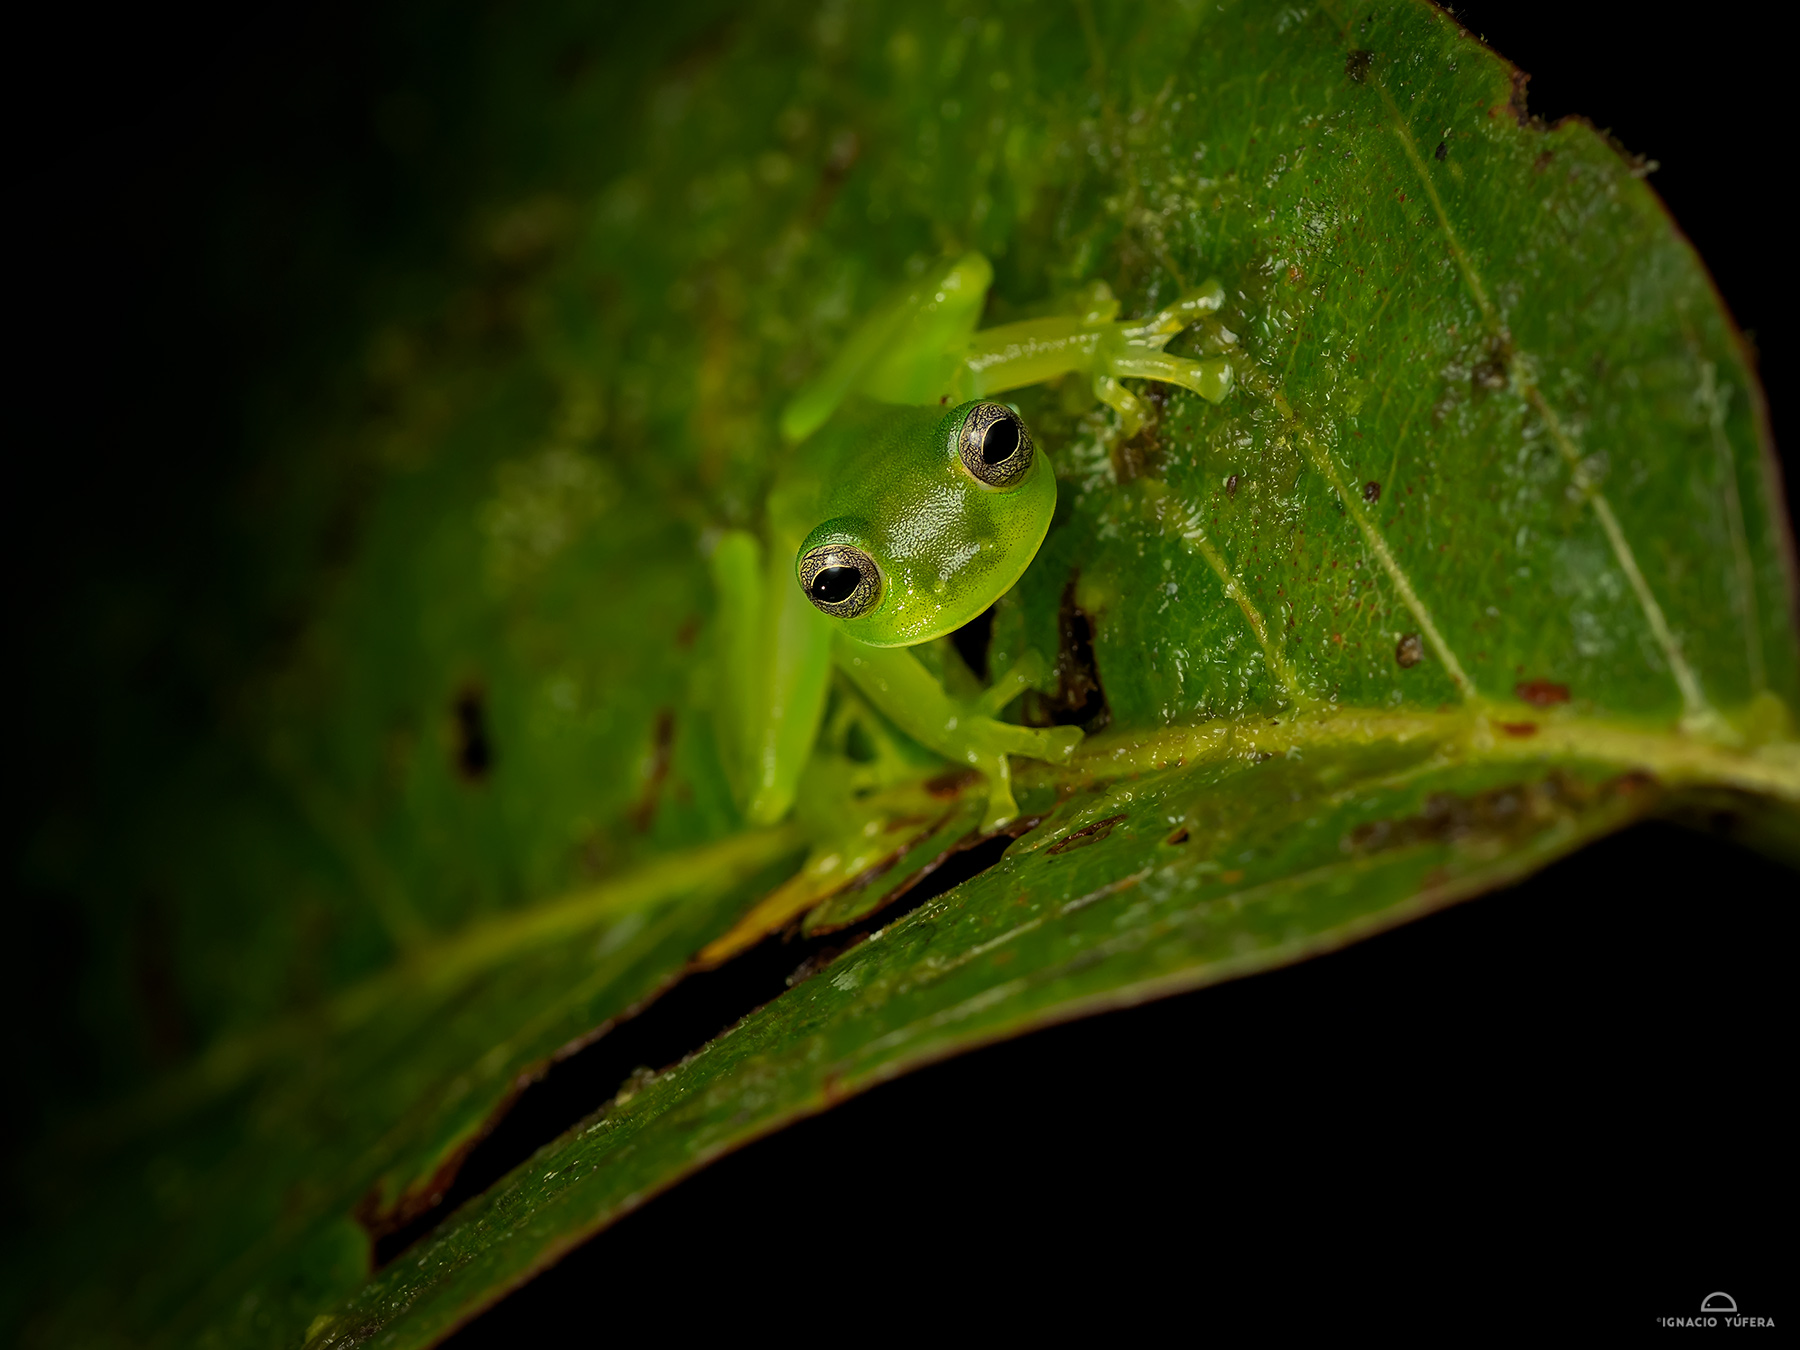 Dwarf Glass Frog (Cochranella spinosa), Fortuna, Panama, July